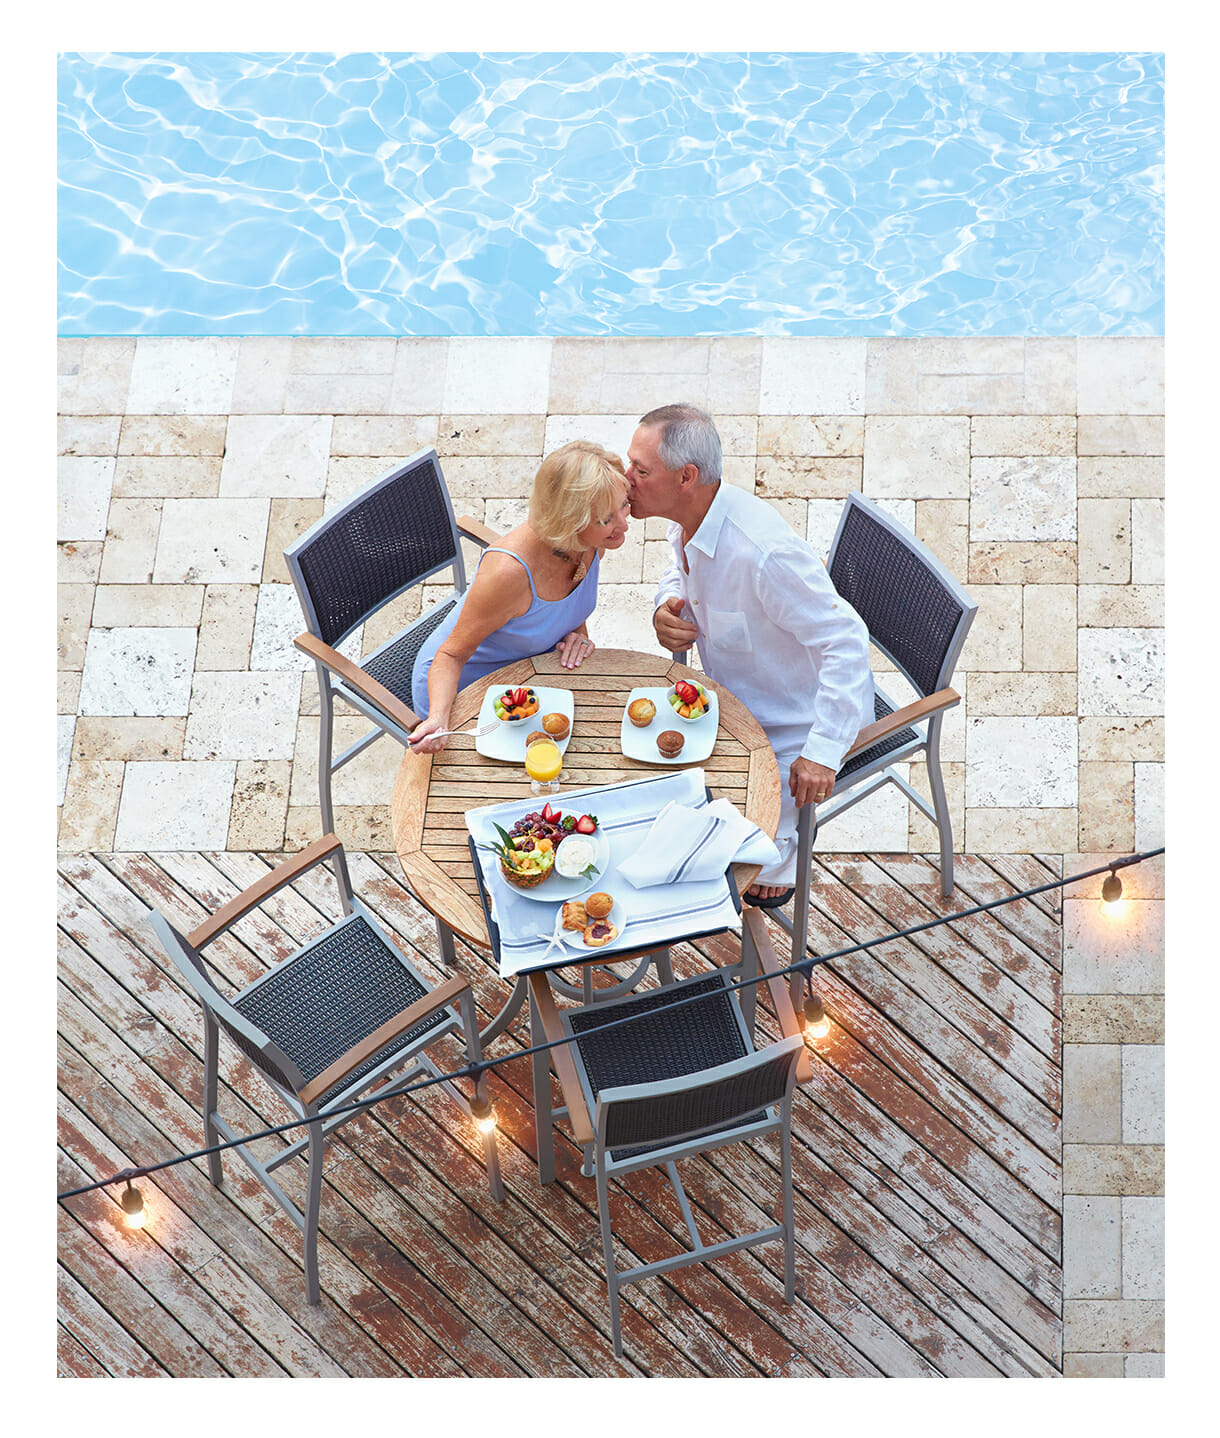 Pool side outdoor dining with senior couple.